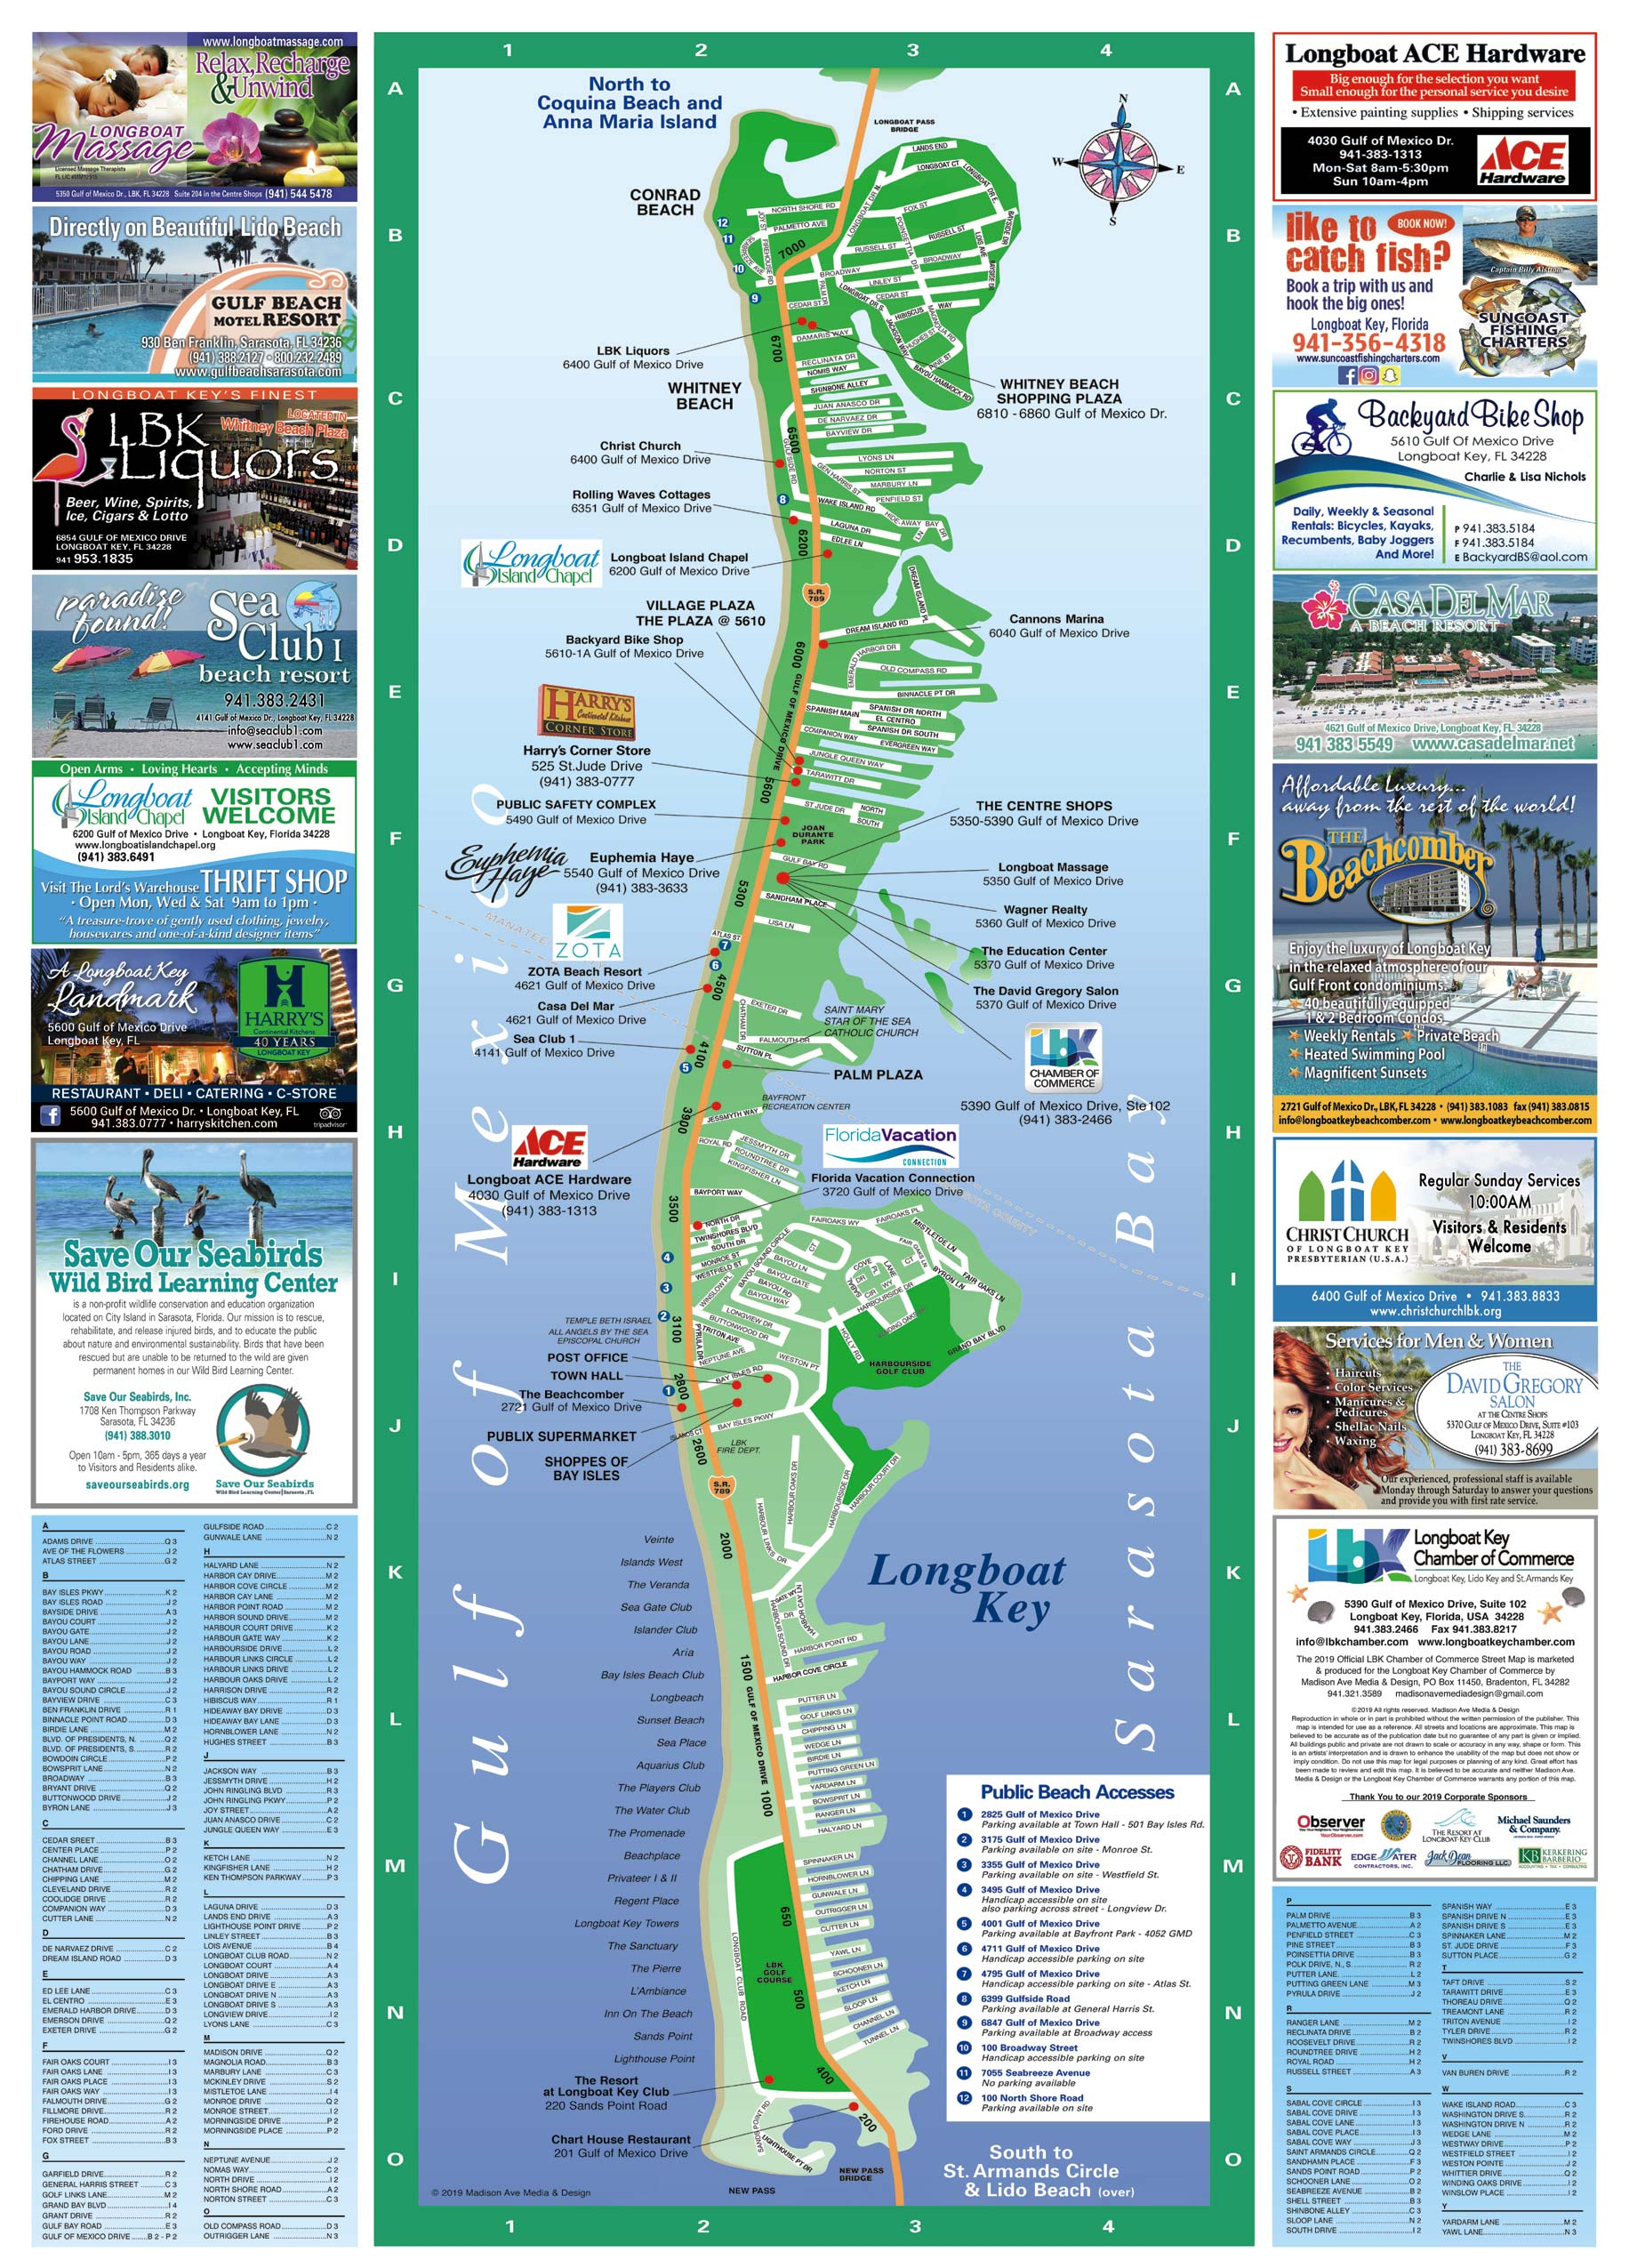 Siesta key florida on a clipart map image freeuse Longboat Key Map | Longboat Key Chamber of Commerce image freeuse